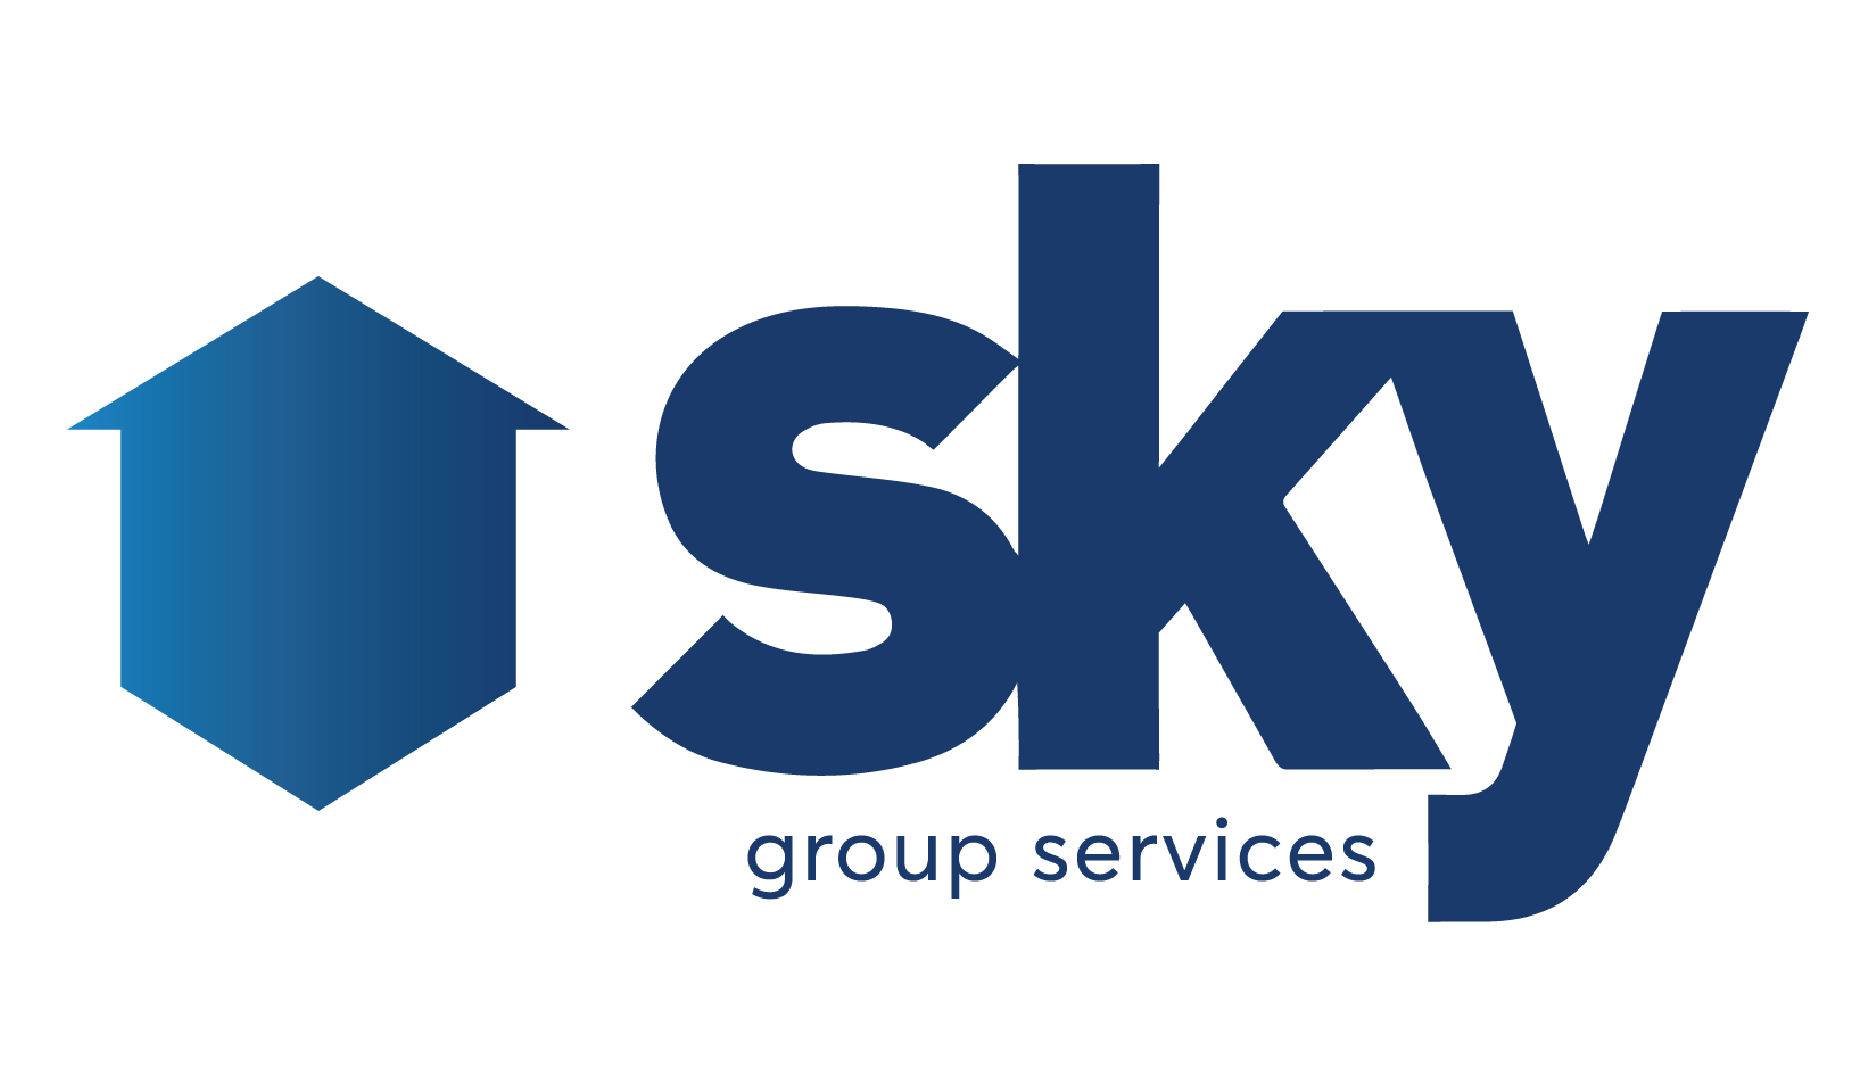 Sky Group Services